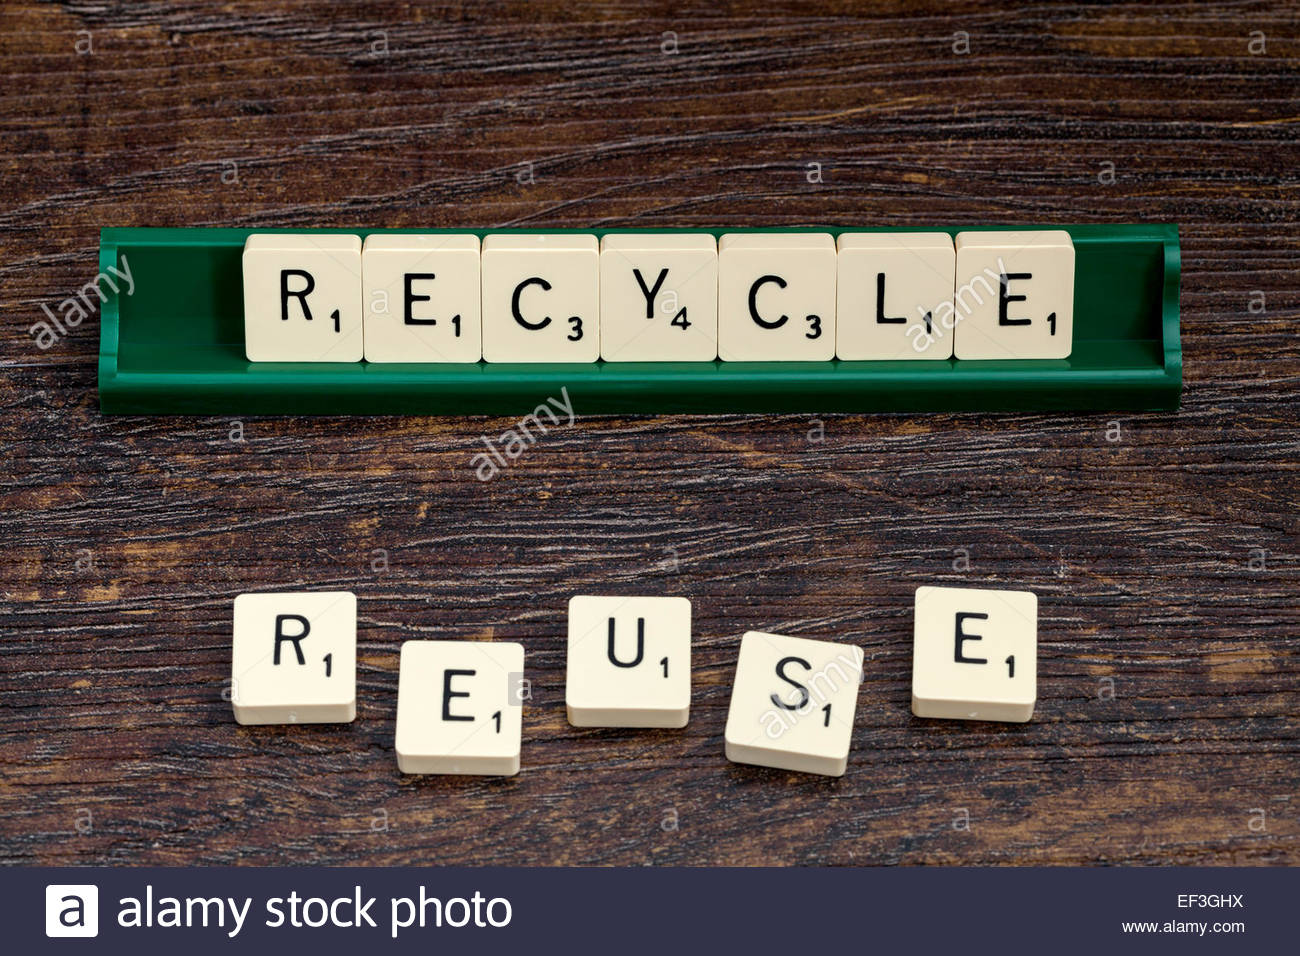 Recycle and Reuse spelled out with scrabble letters. - Stock Image